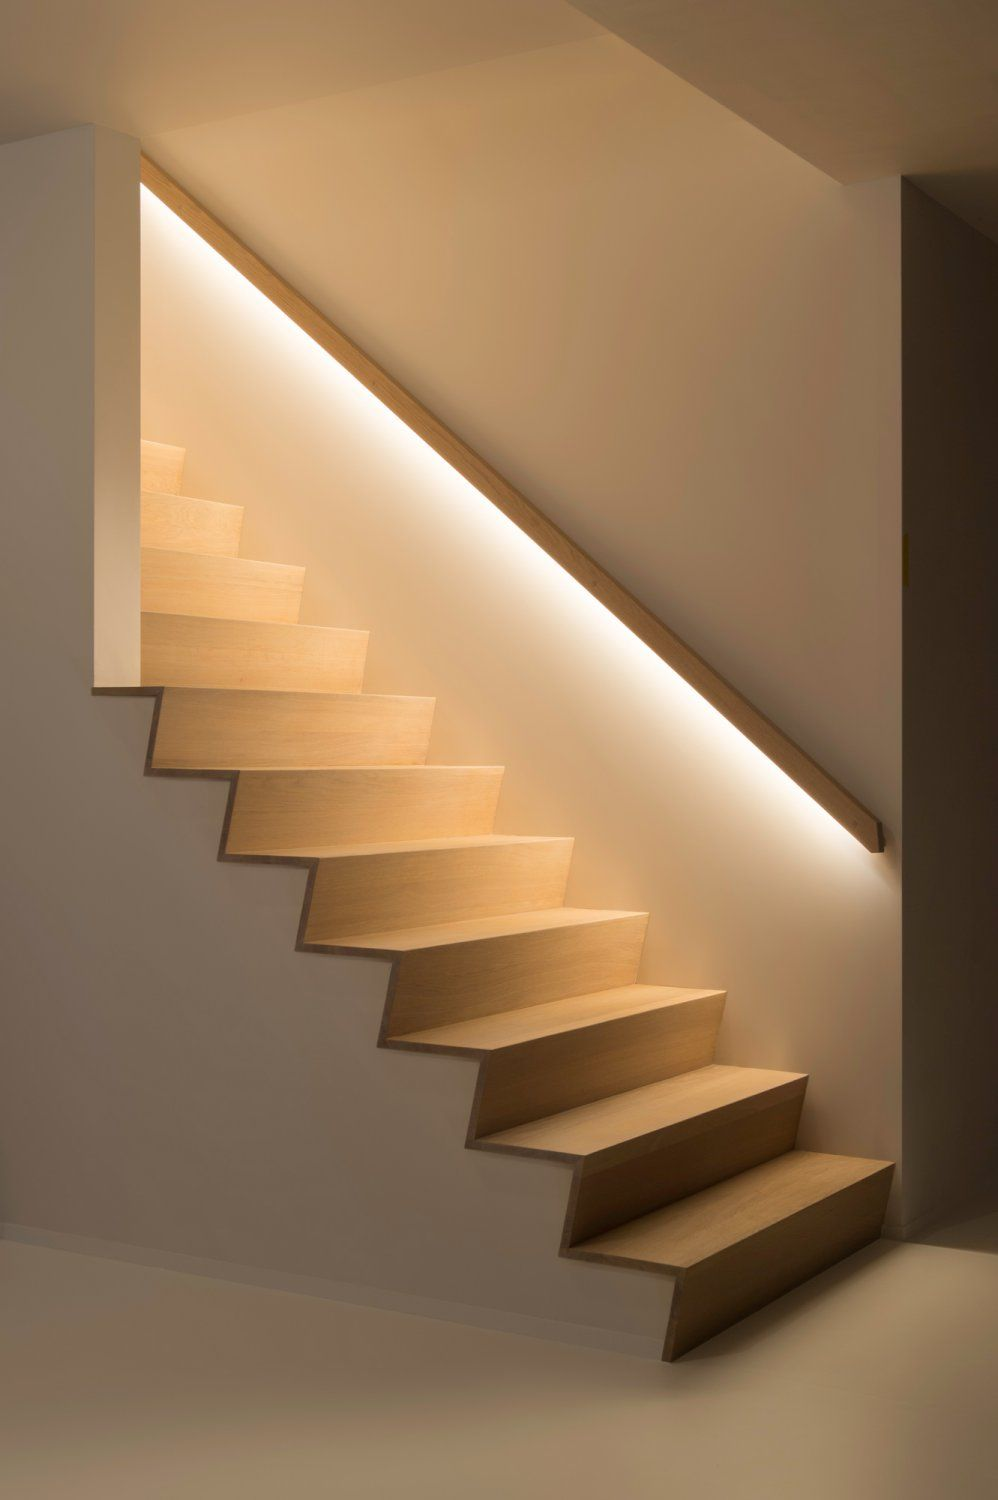 LED-verlichting – Decotrap | Stairs | Pinterest | Treppe ...